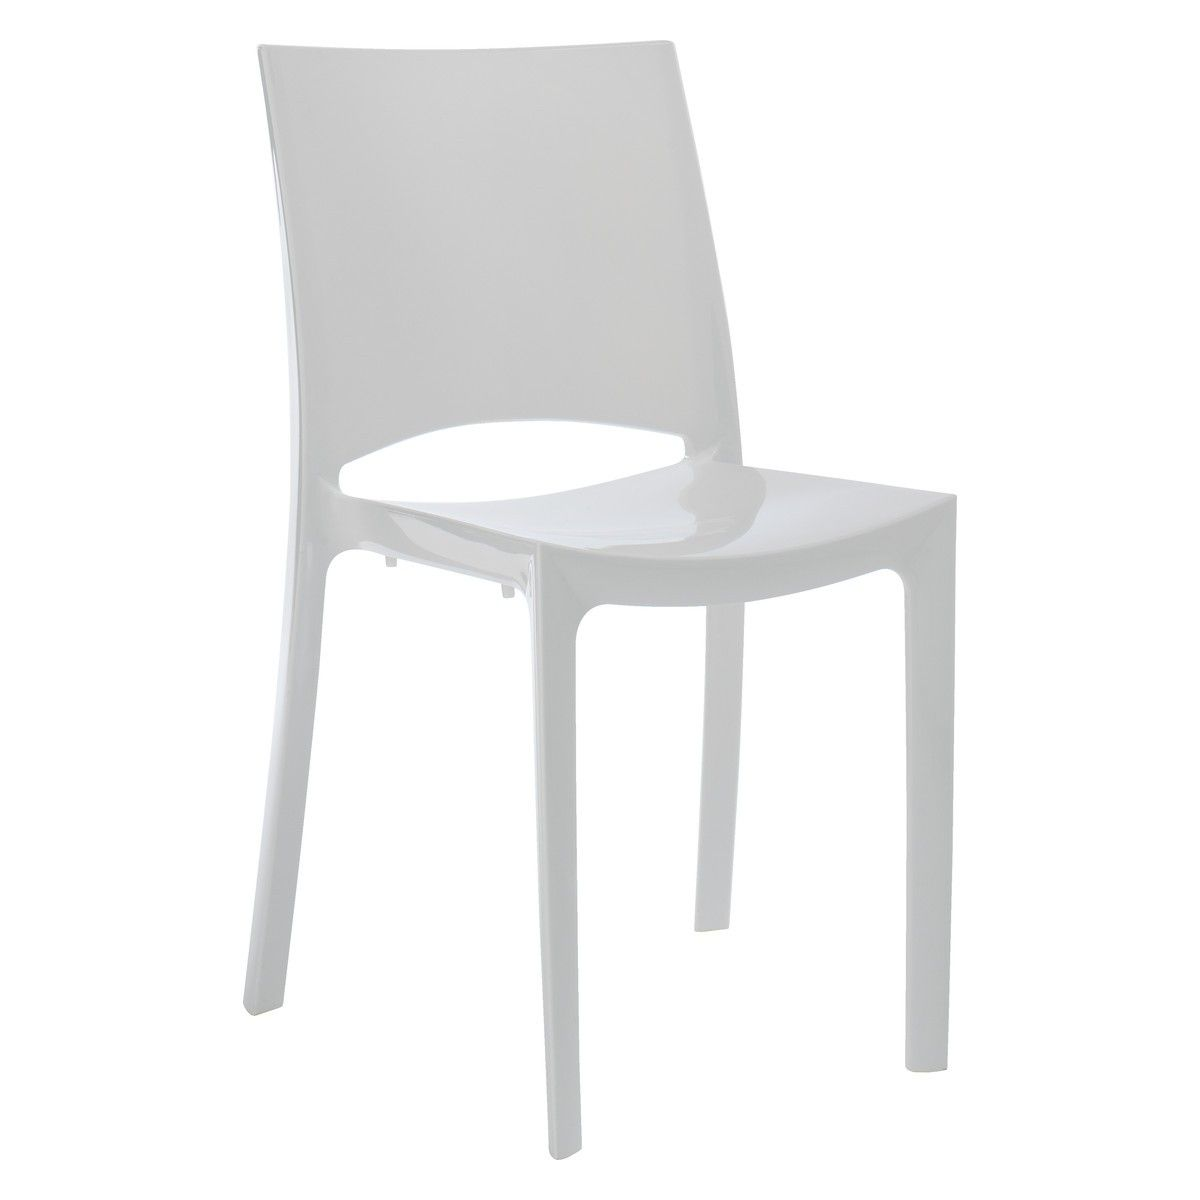 Verne white plastic stackable dining chair buy now at for White plastic dining chair